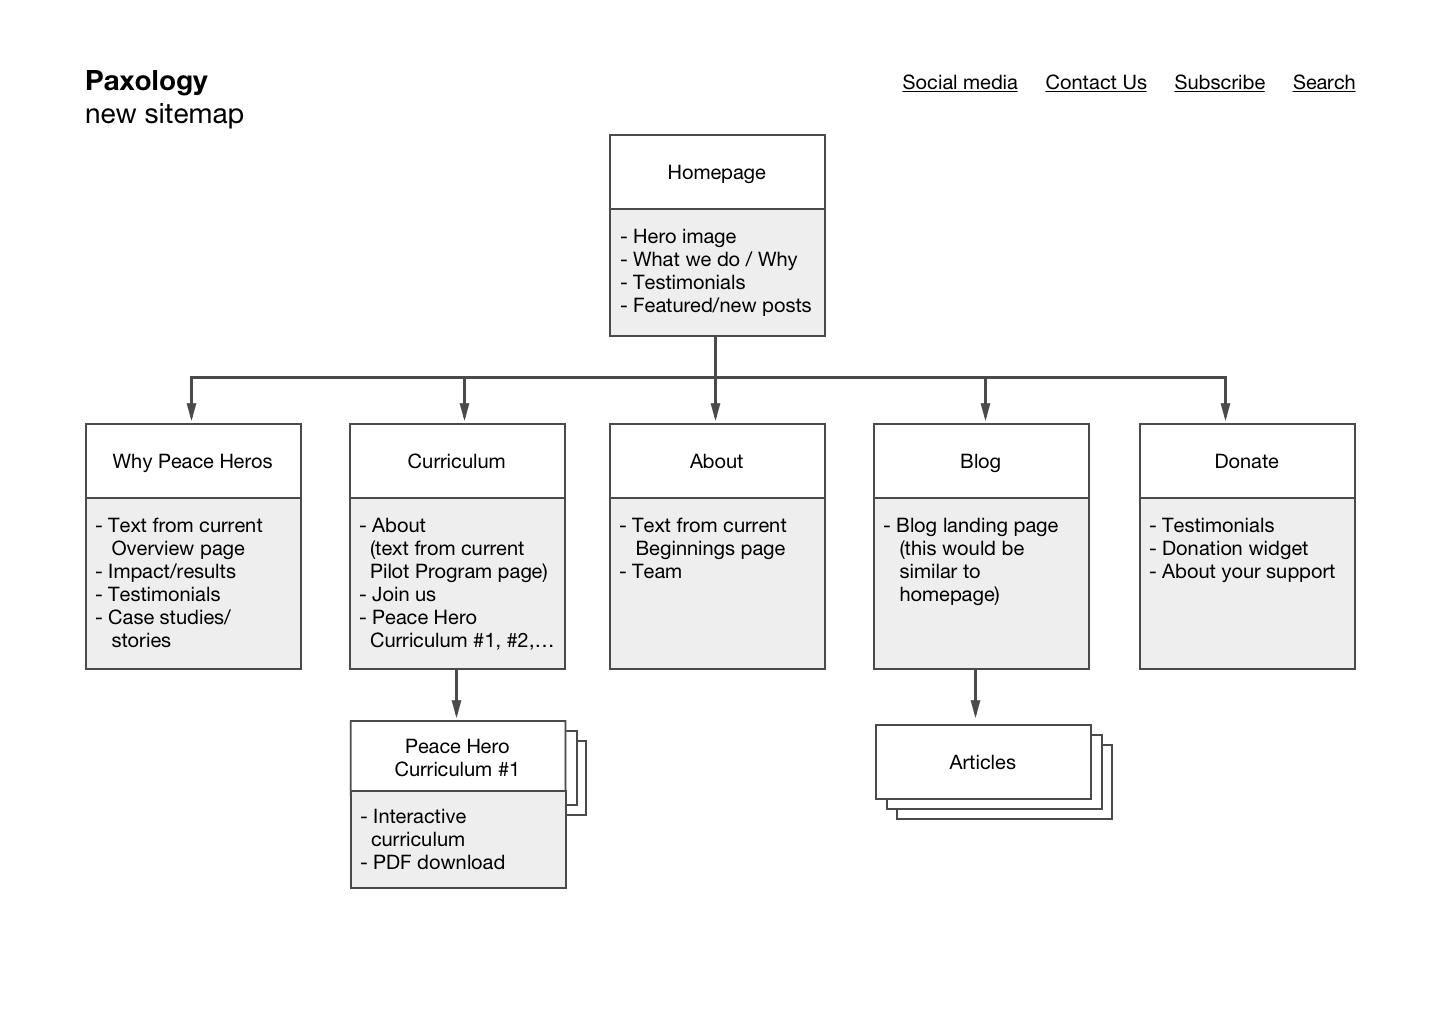 sitemap-new.png